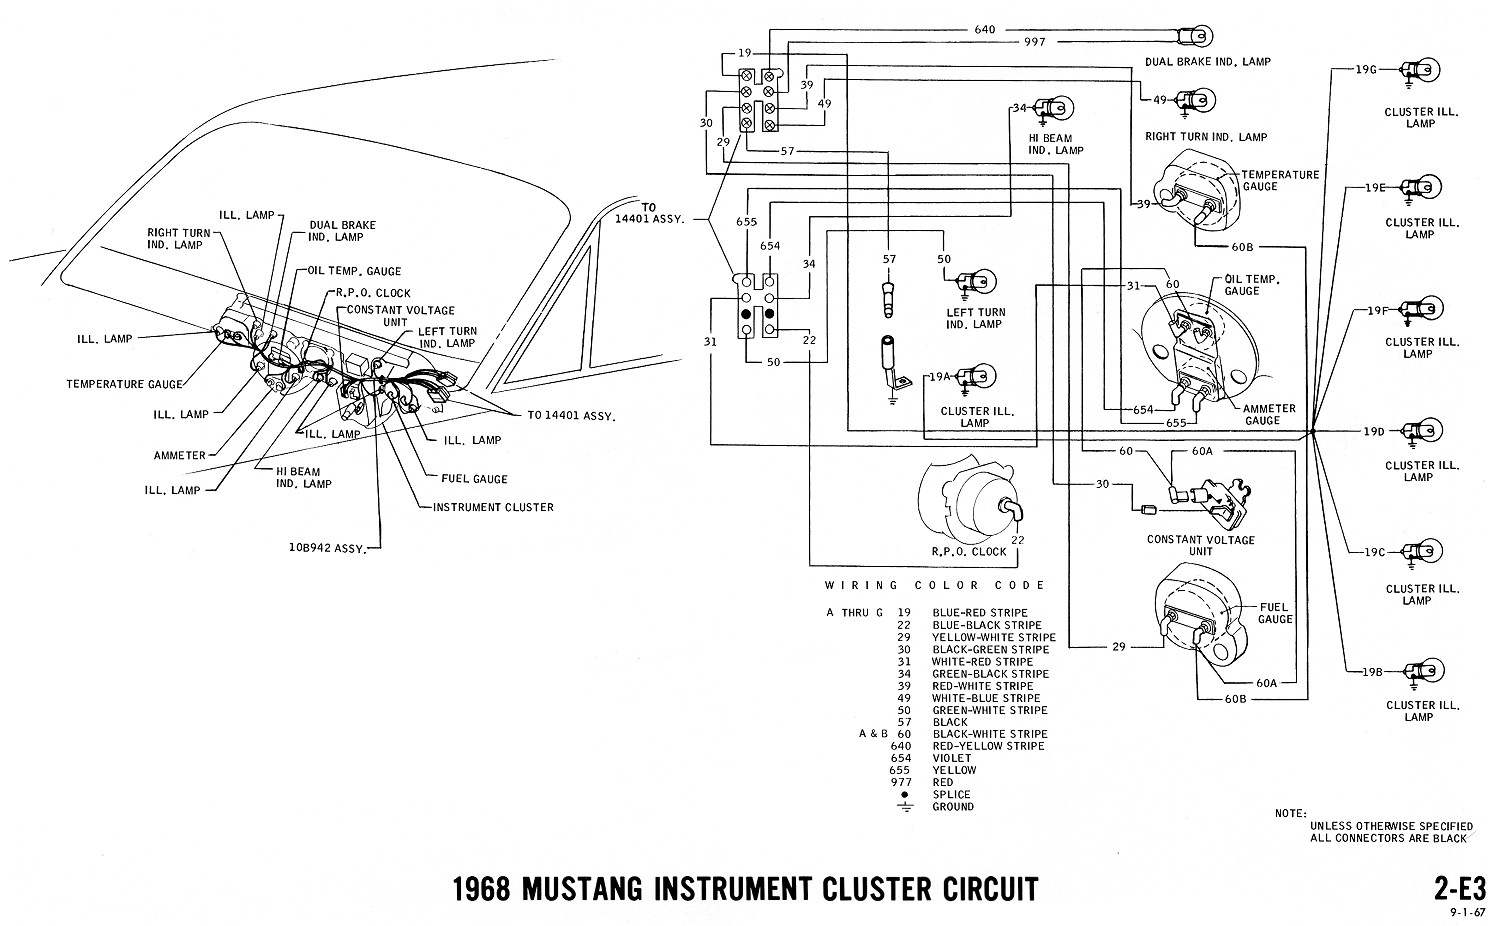 Pleasing 1968 Mustang Wiring Diagrams And Vacuum Schematics Average Joe Wiring Cloud Cranvenetmohammedshrineorg